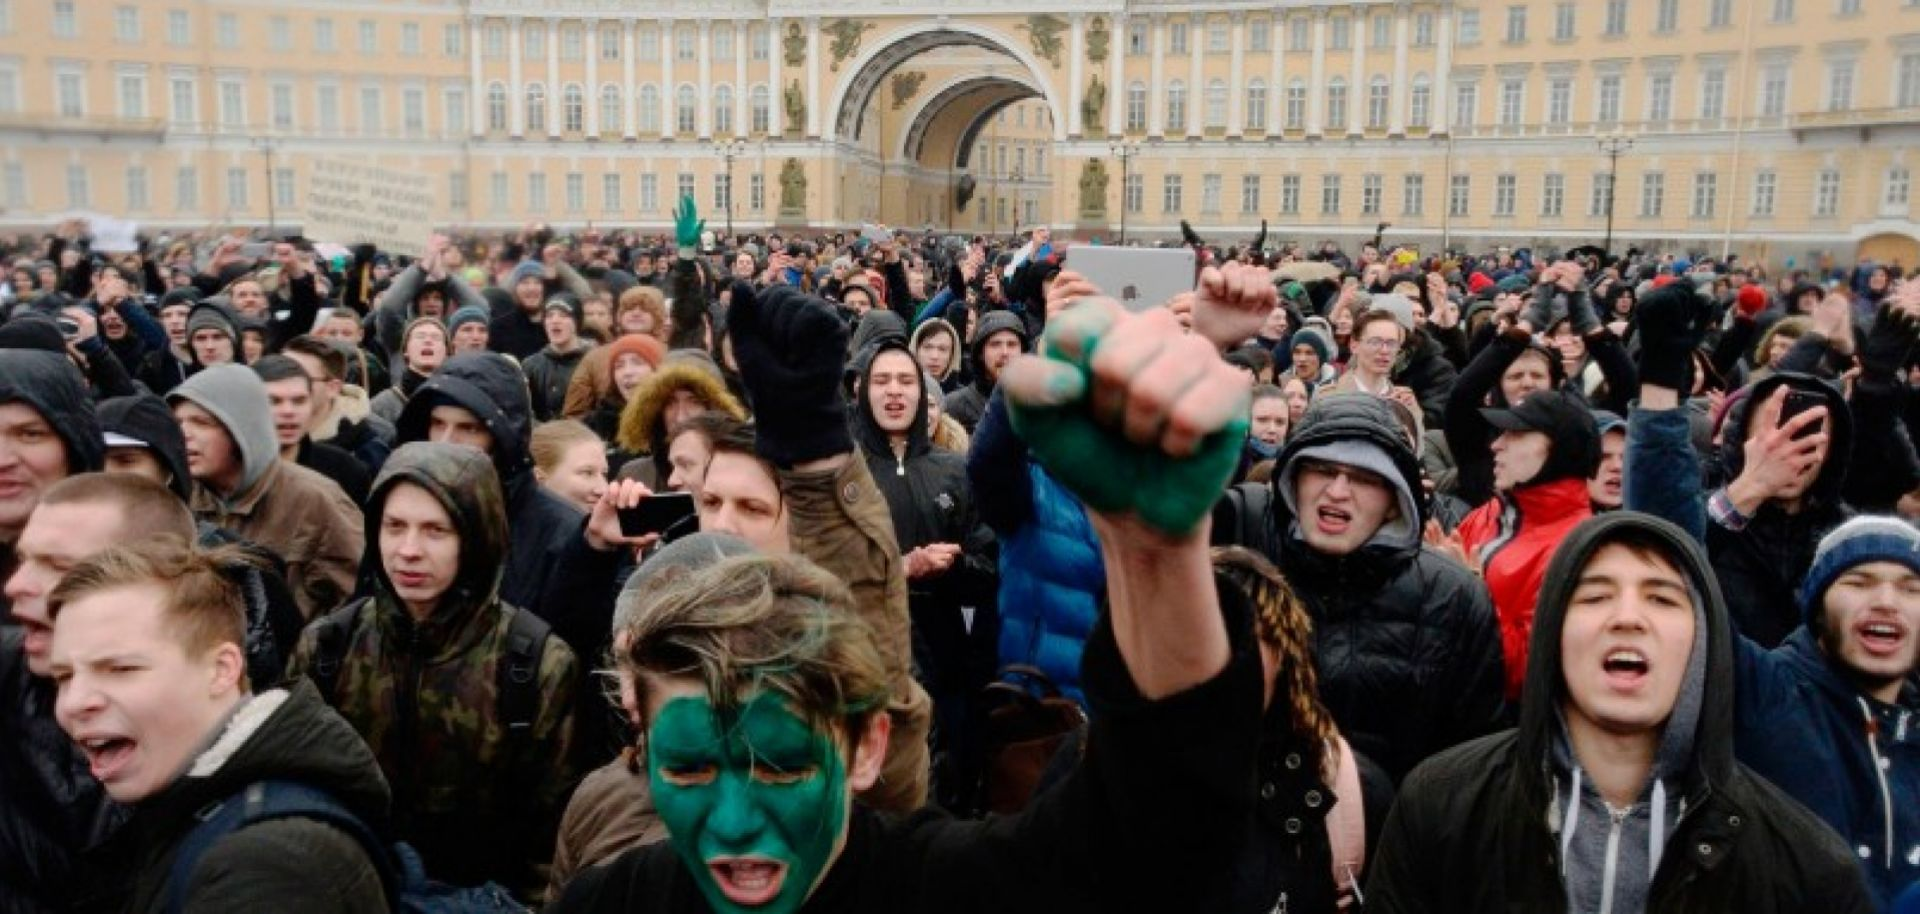 A growing number of Russians today never knew life without President Vladimir Putin, putting the longtime leader in an unfamiliar predicament.